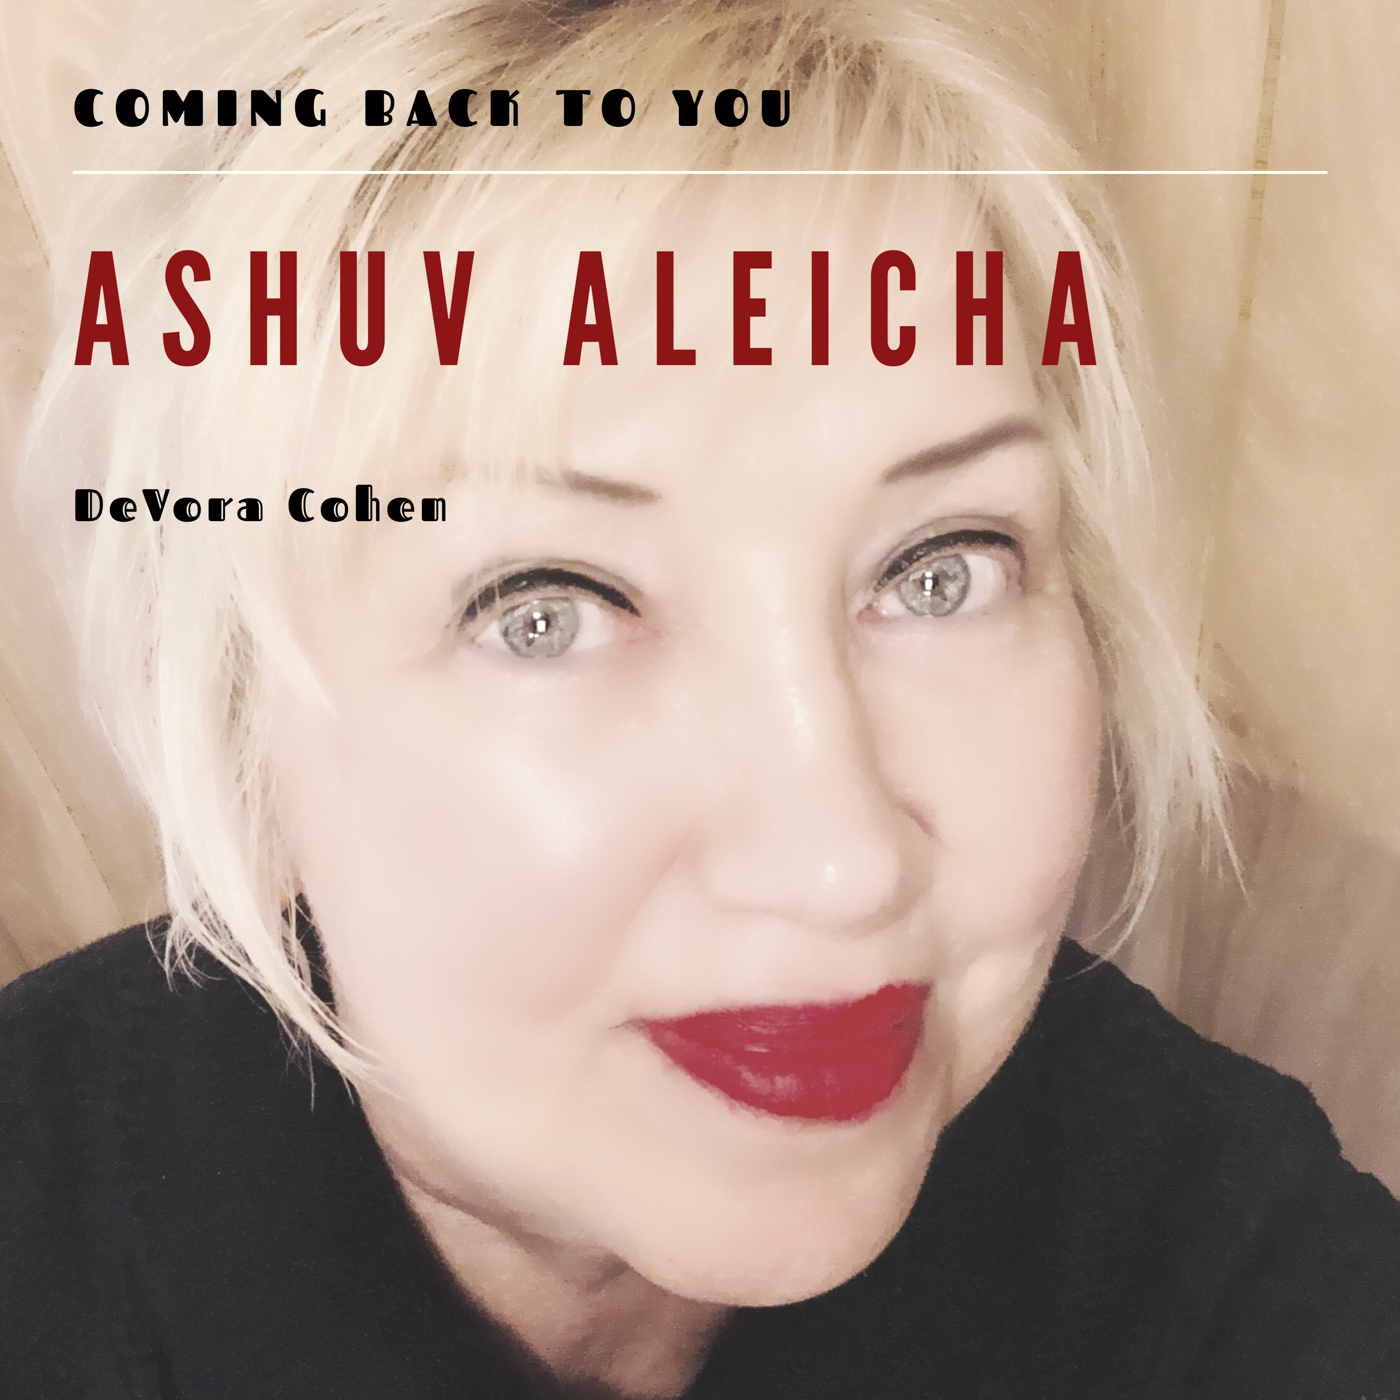 Coming Back to You single (Ashuv Aleicha)